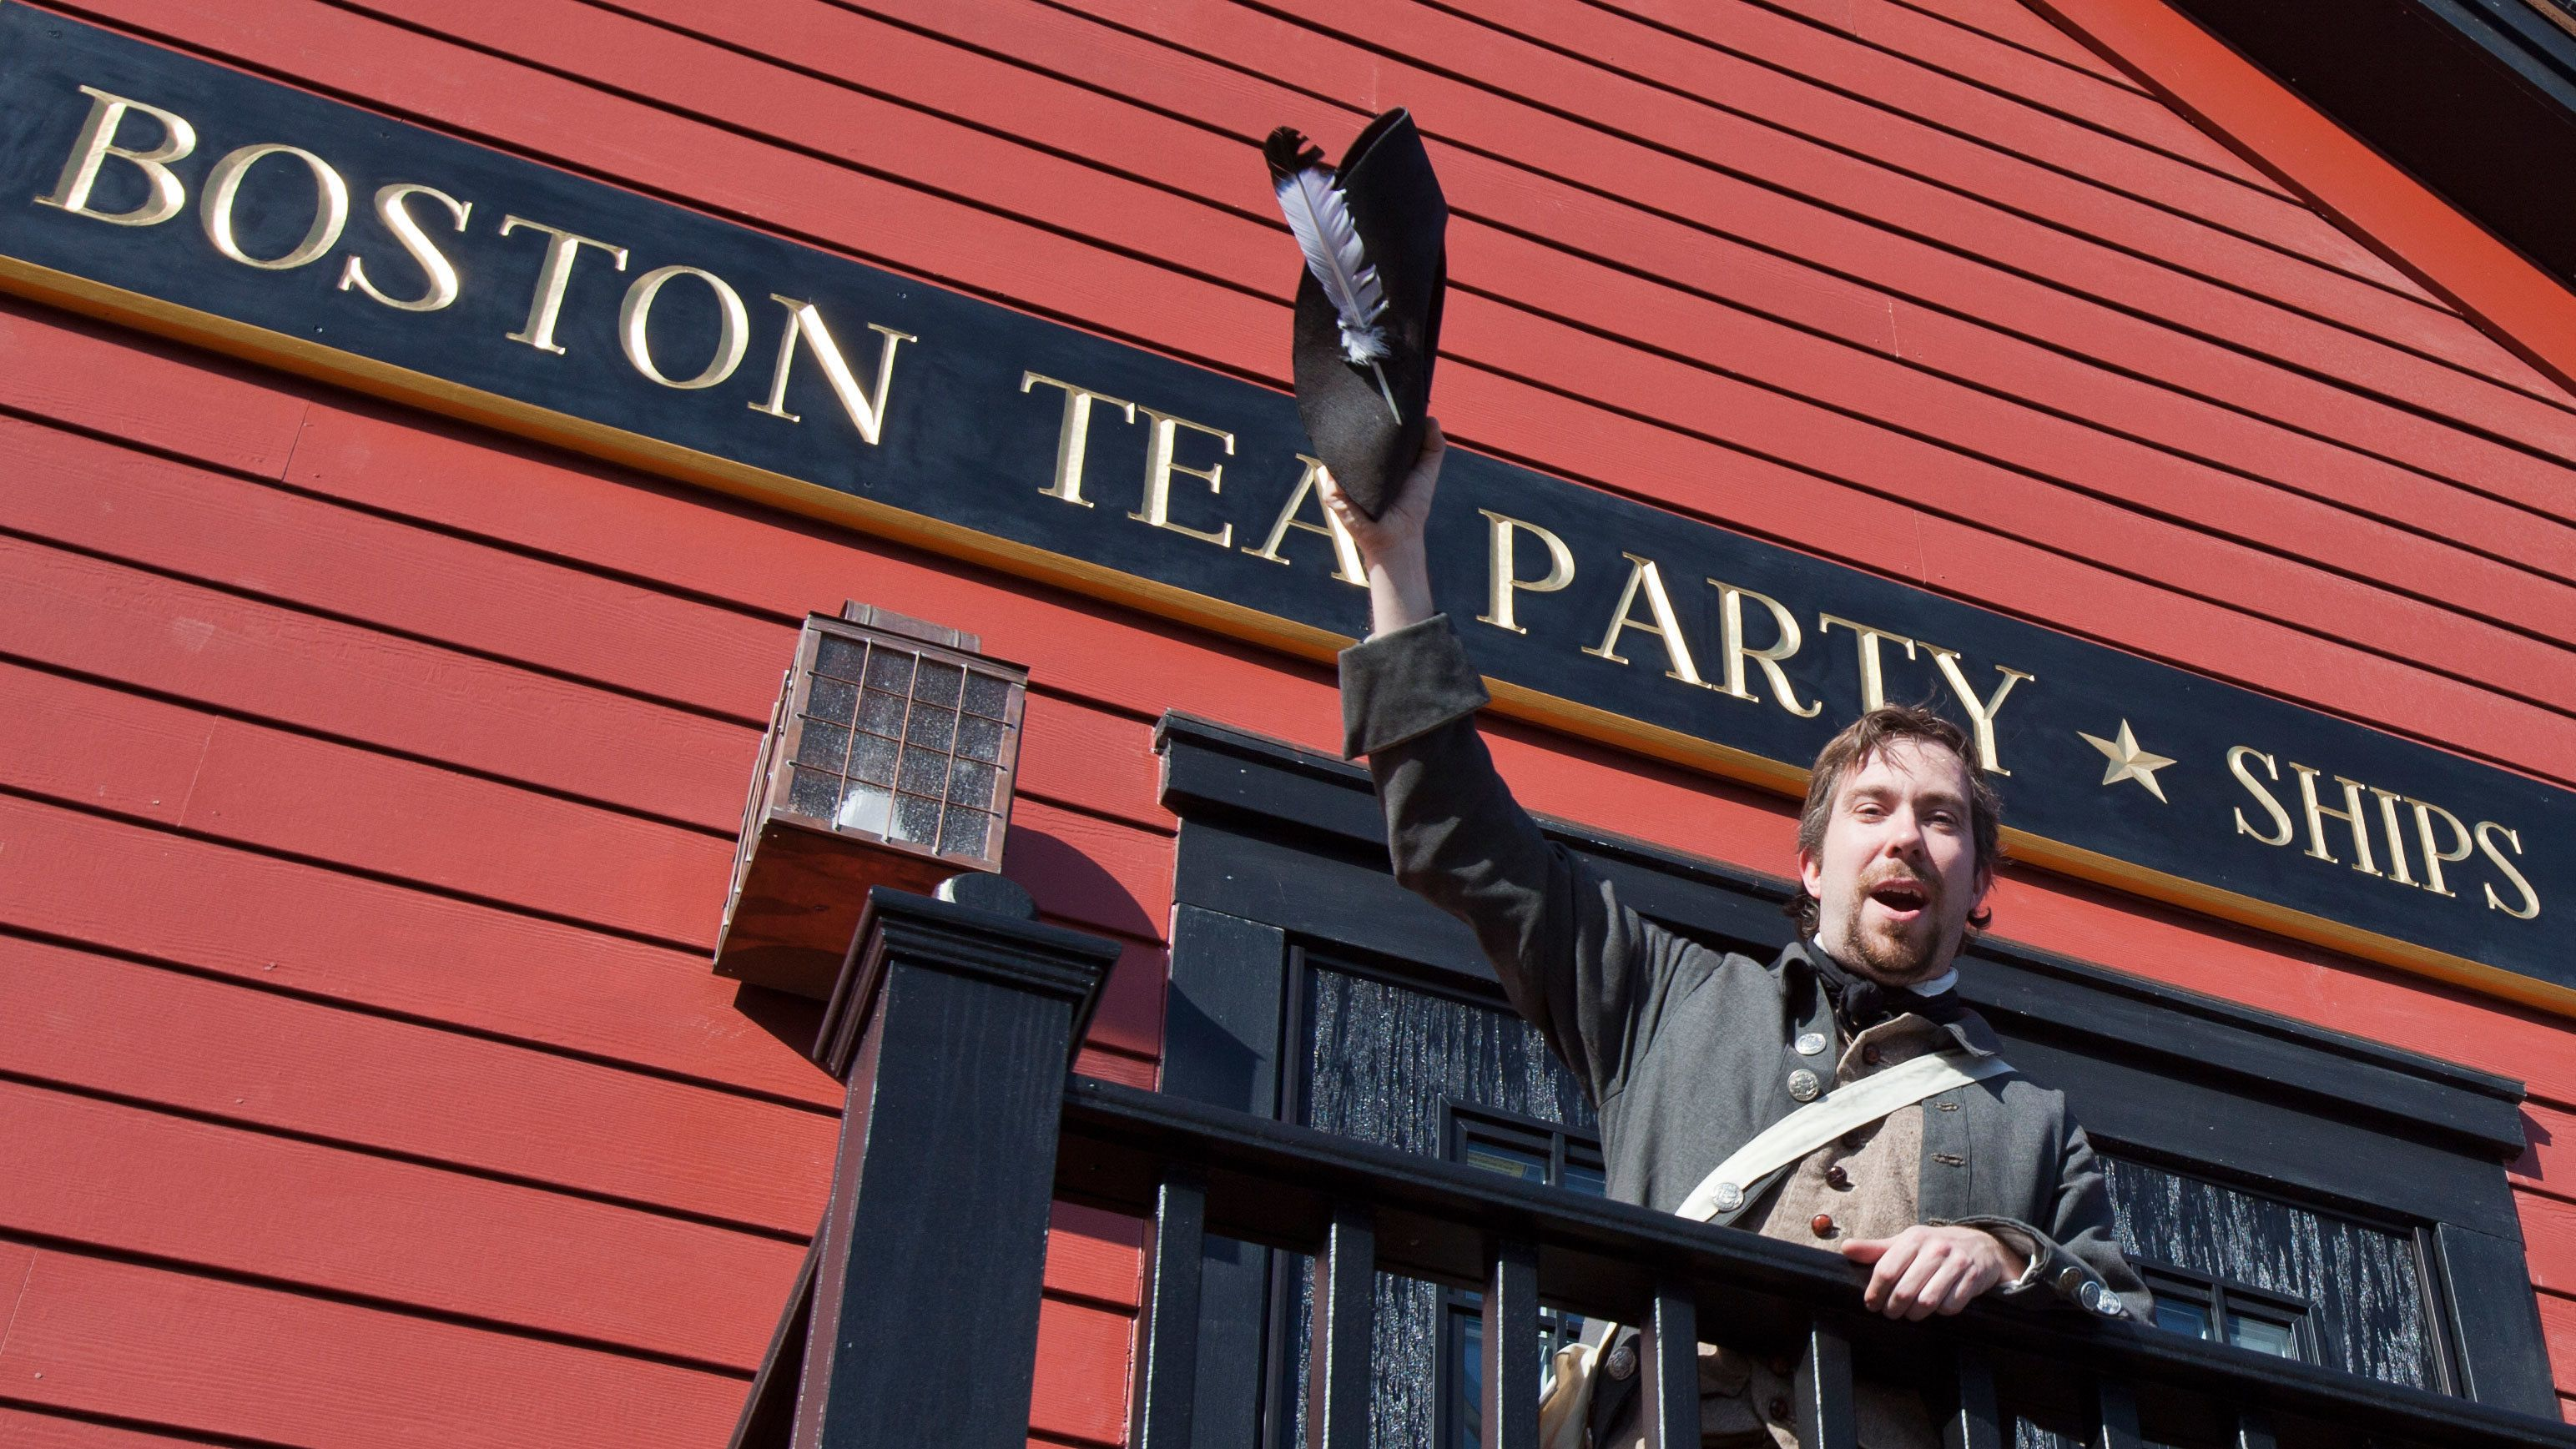 Boston Tea Party Ships & Museum Tickets